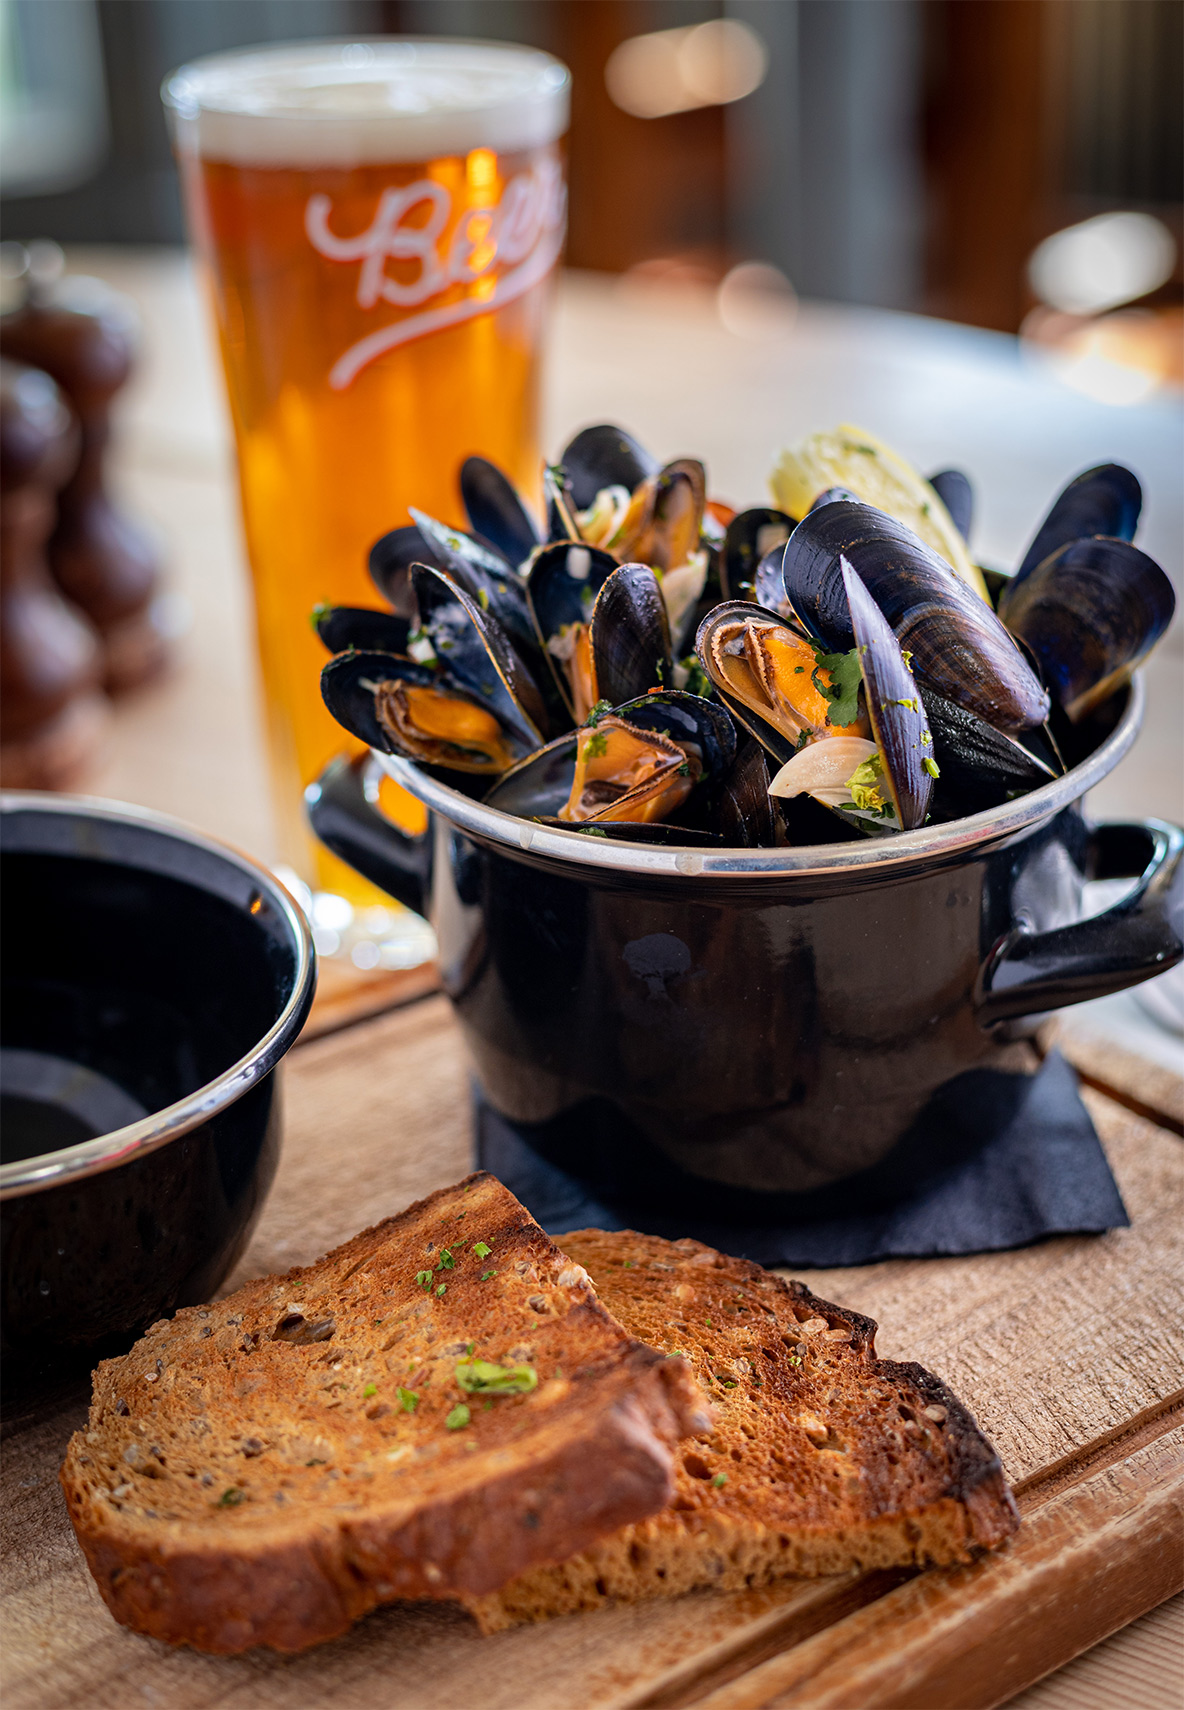 Food Photography. Muscles on a wooden cutting board with a pint a larger in the background. Rich colours with real pub atmosphere.